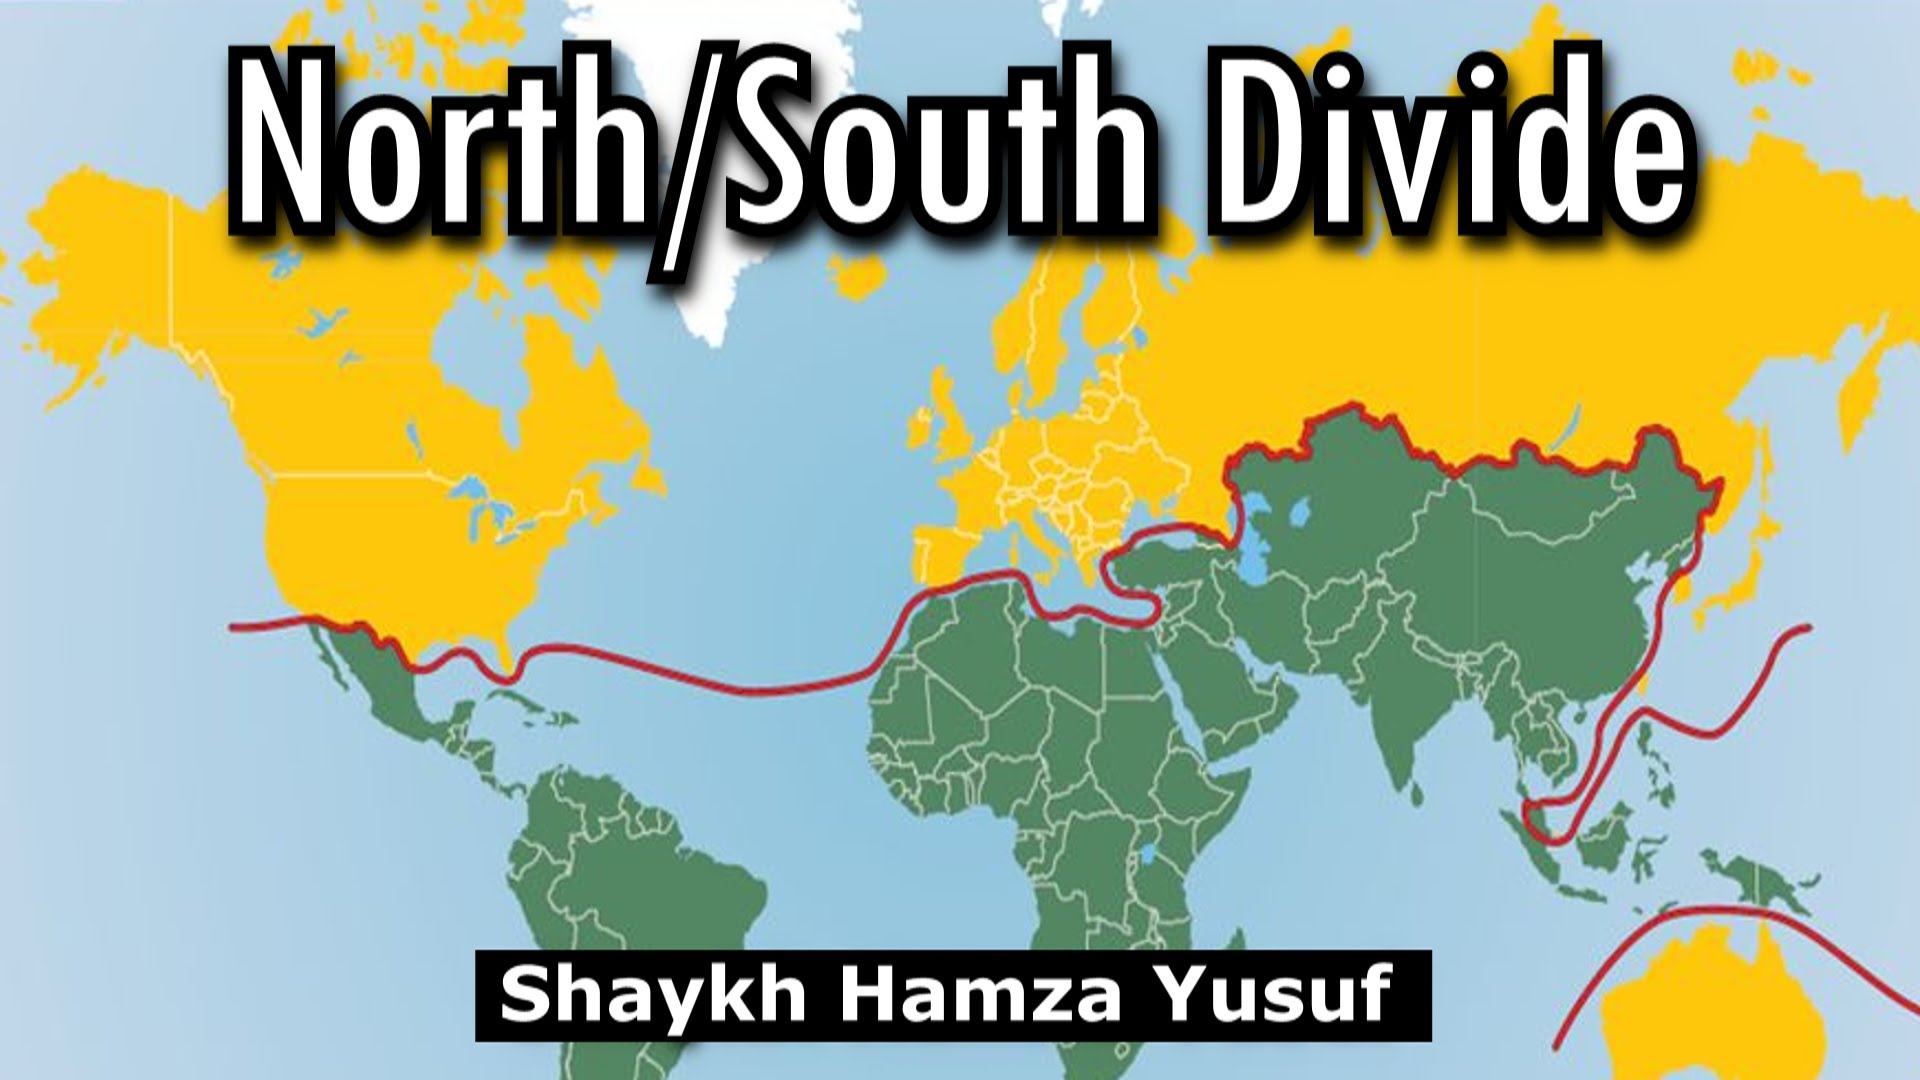 Source: Youtube Capitalism: The North/South Divide - Shaykh Hamza Yusuf